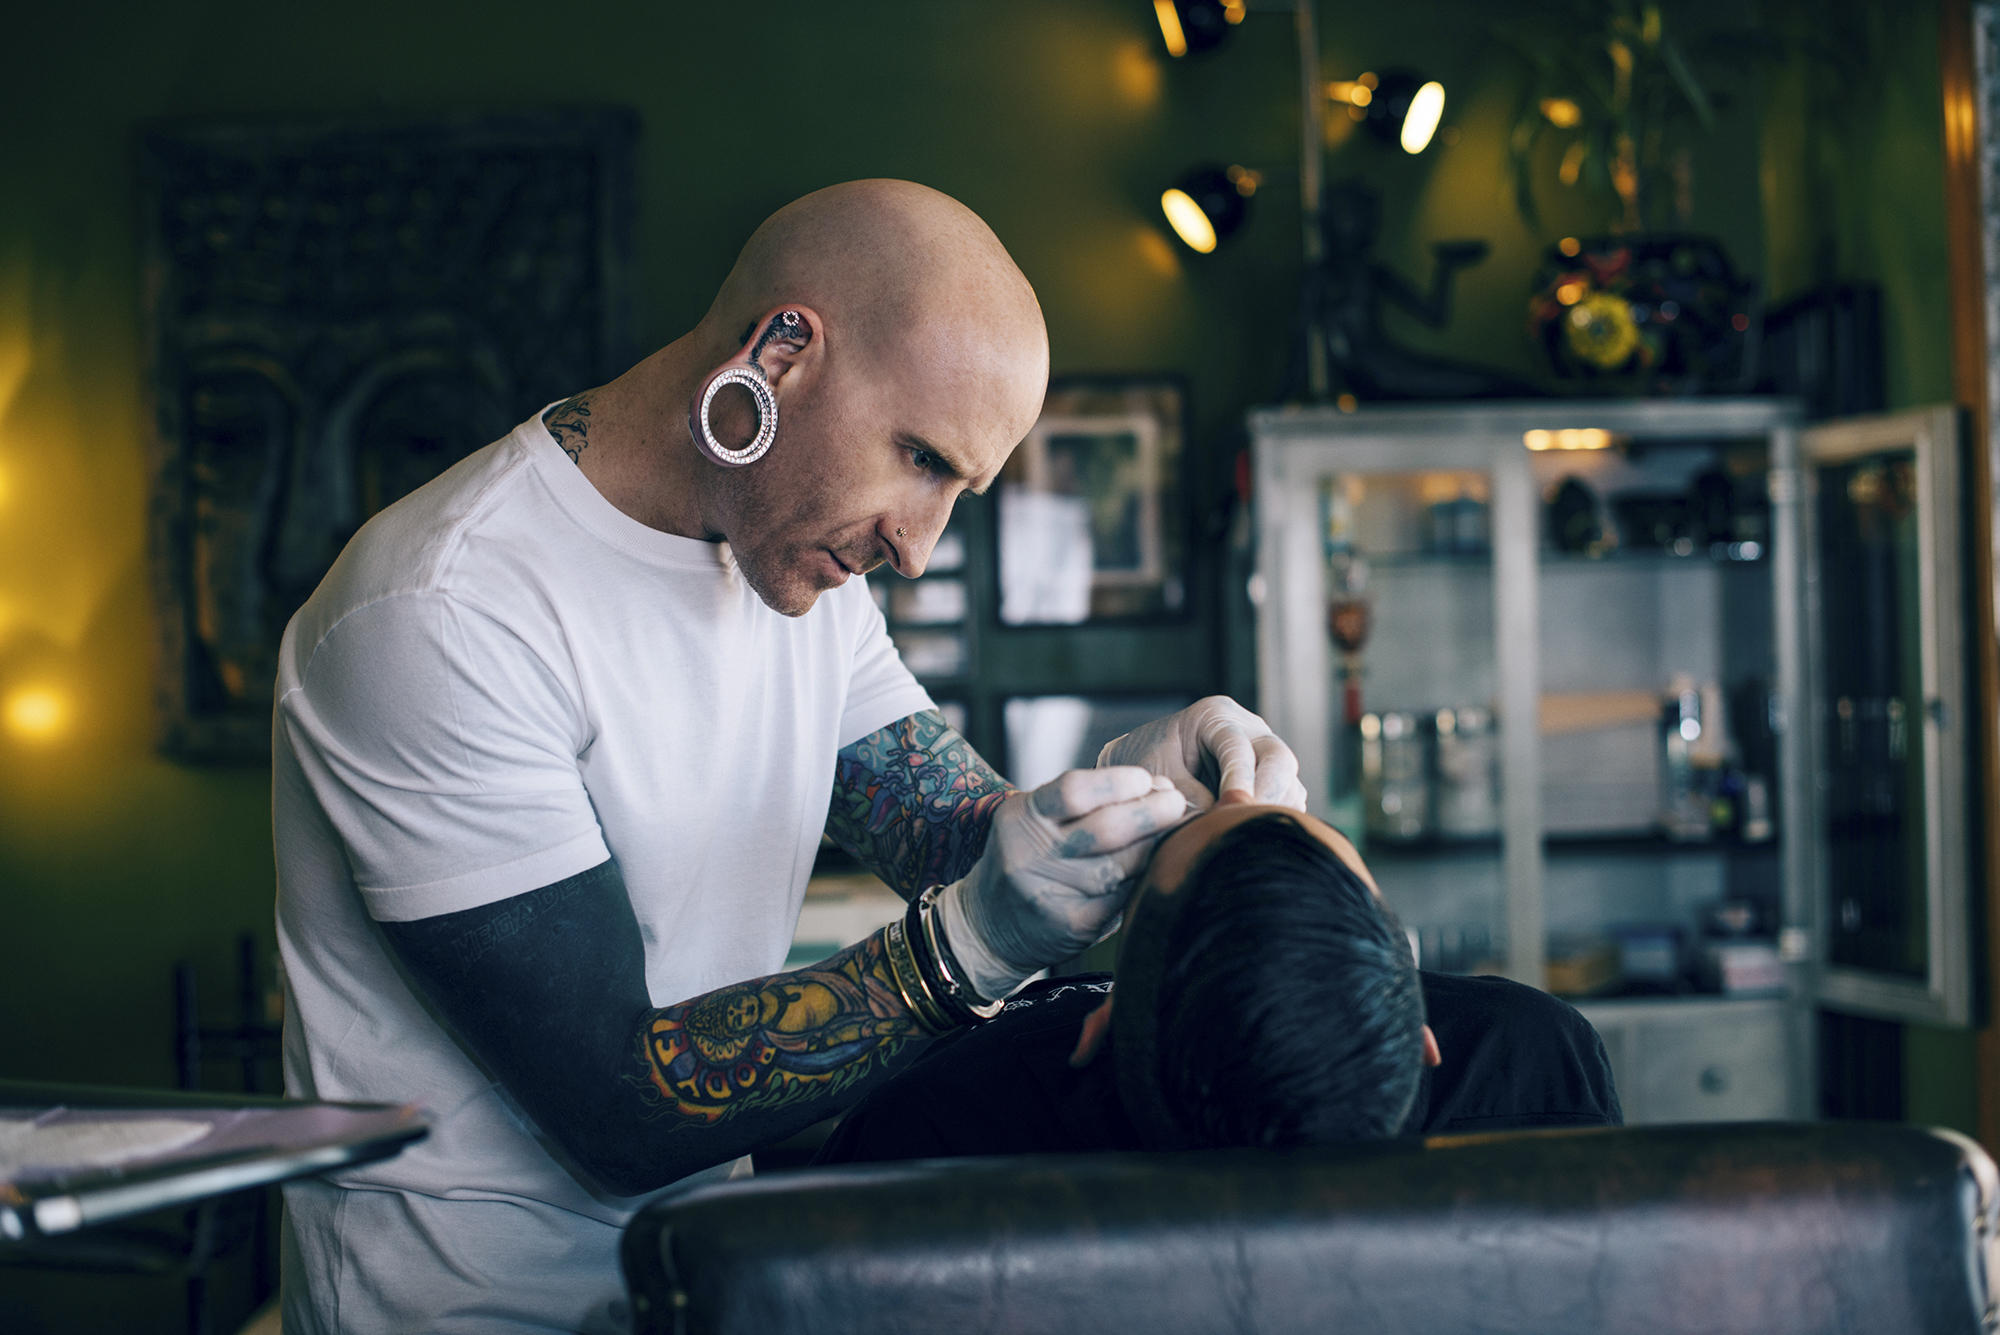 American Academy of Pediatrics publishes report on tattoos